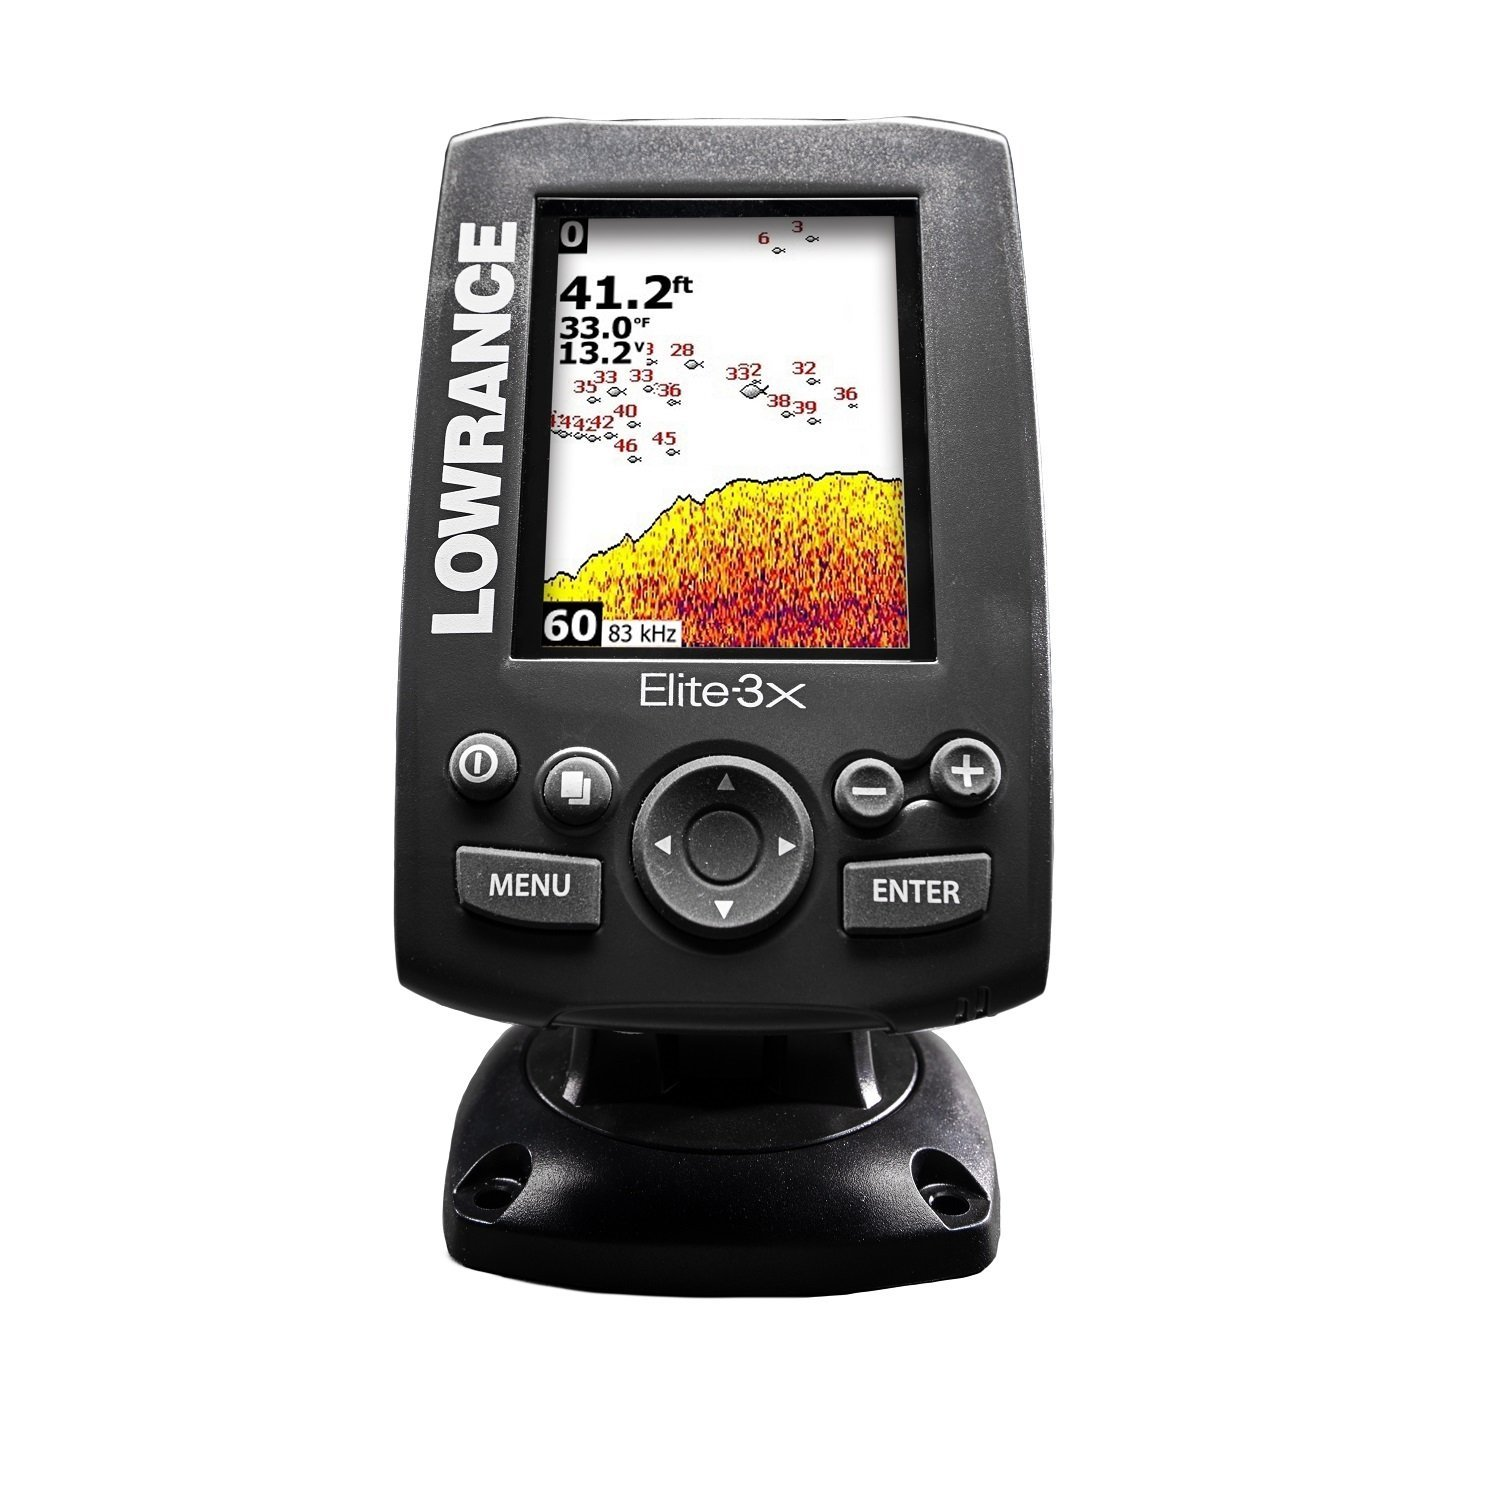 Lowrance elite 3x review fish finder guy for Fish finder lowrance